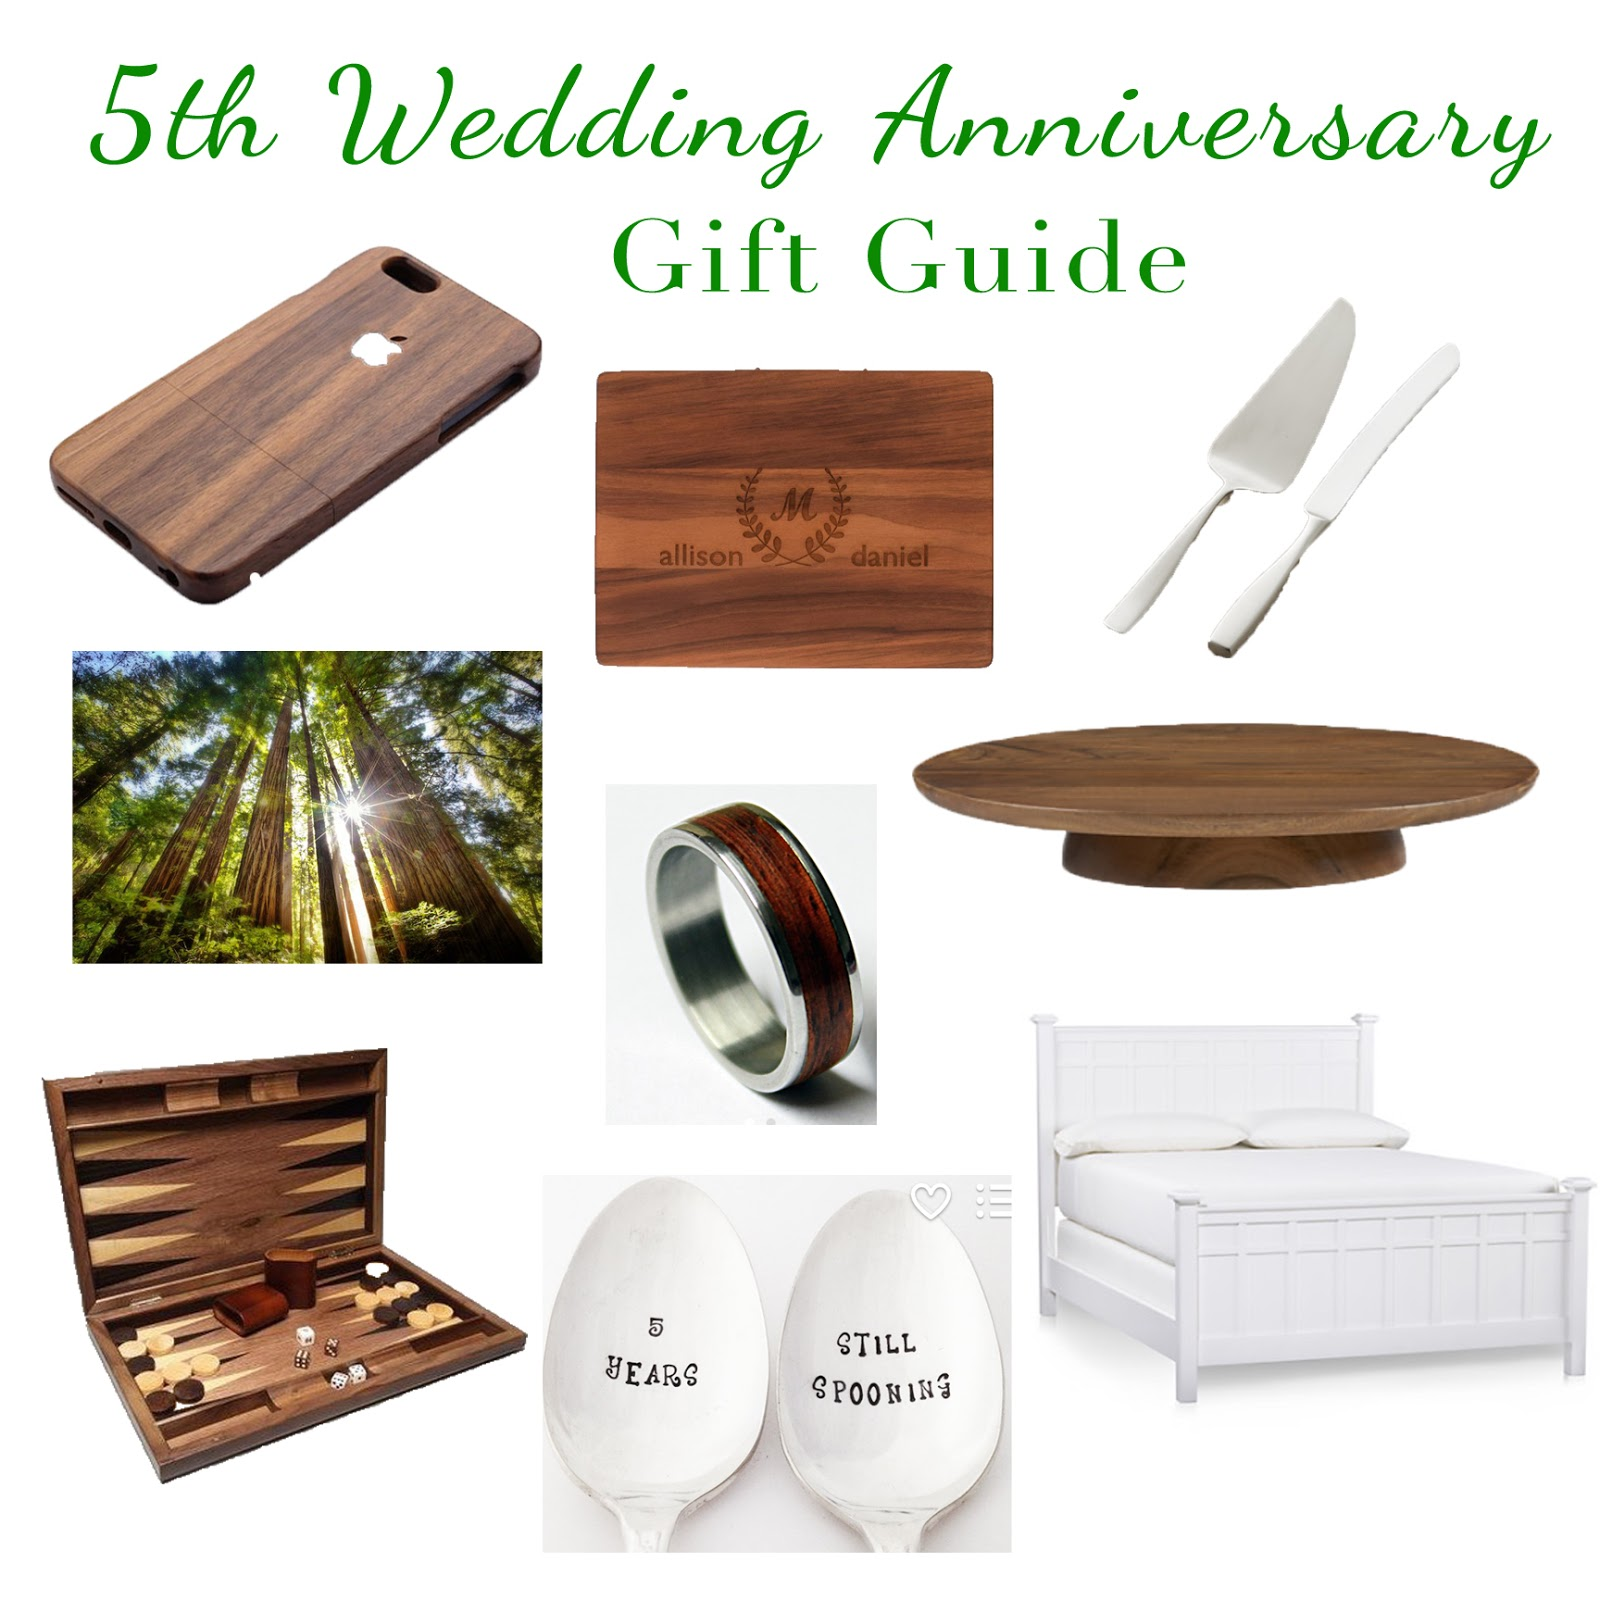 Fifth Wedding Anniversary Gifts For Her: The Adventure Starts Here: 5th Wedding Anniversary Gift Ideas